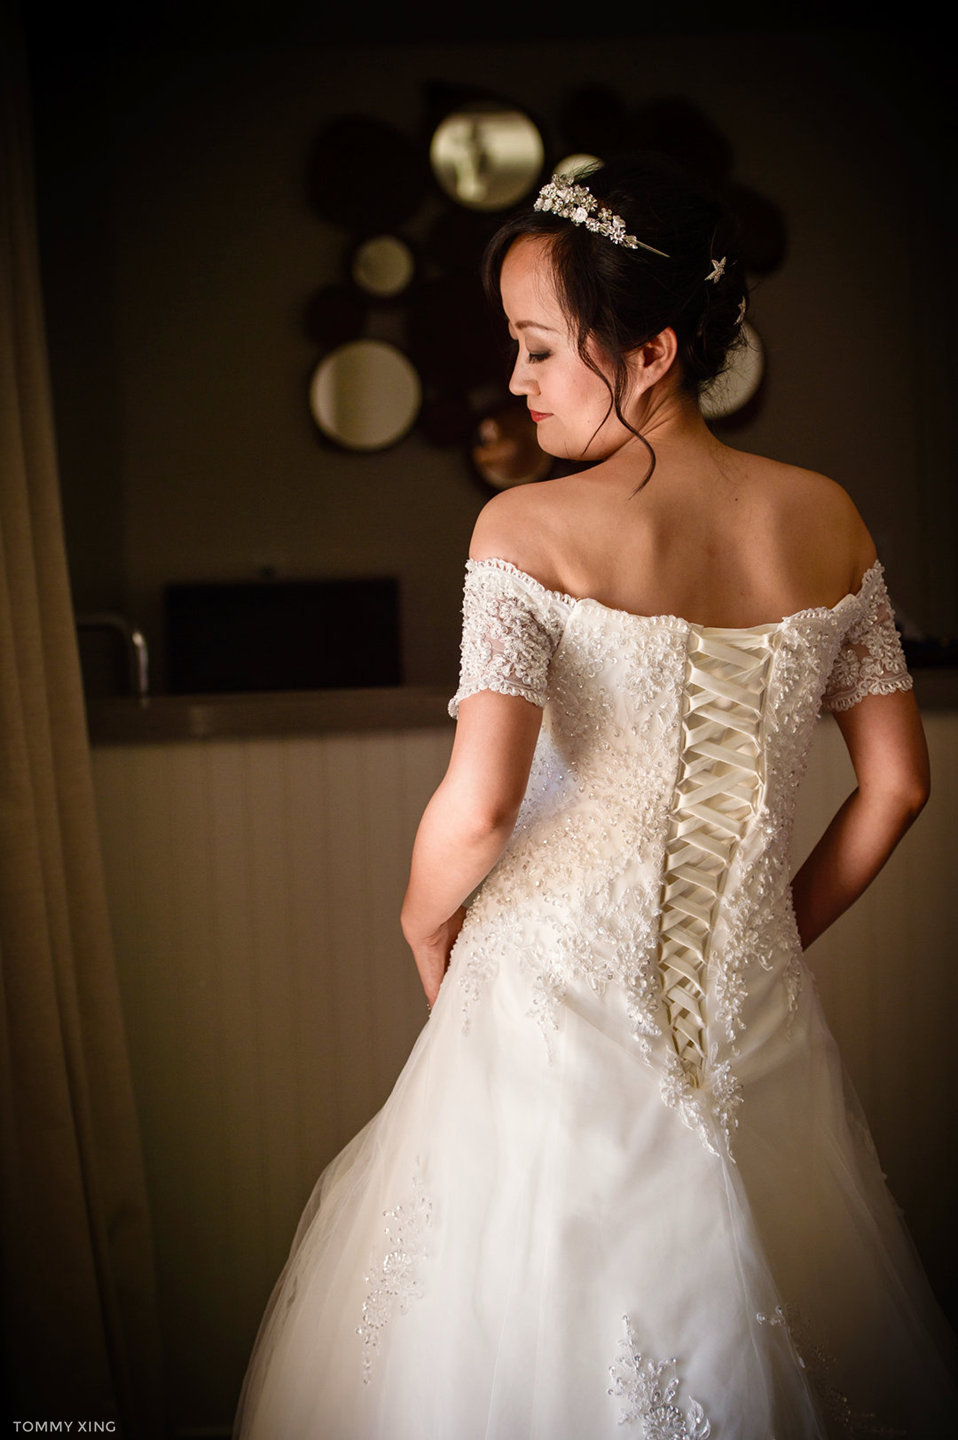 Paradise Point Resort Wedding Xiaolu & Bin San Diego 圣地亚哥婚礼摄影跟拍 Tommy Xing Photography 洛杉矶婚礼婚纱照摄影师 037.jpg